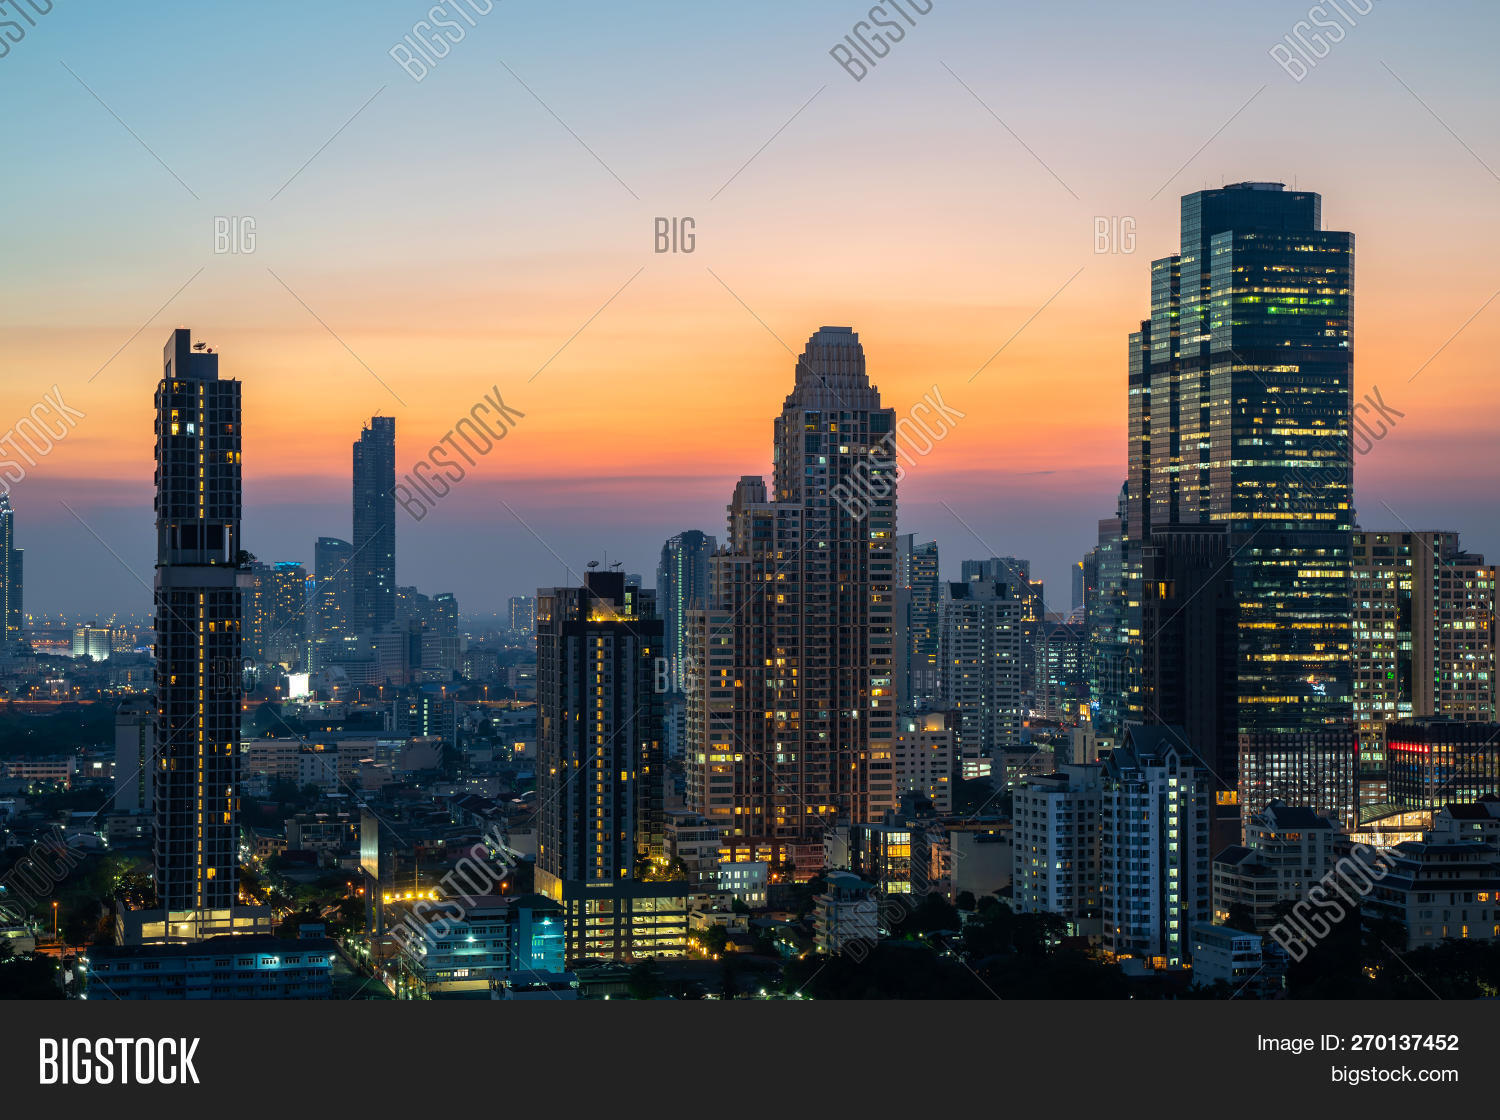 architecture,asia,asian,bangkok,beautiful,blue,building,business,capital,city,cityscape,district,downtown,dusk,flow,high,landmark,landscape,light,metropolis,midtown,modern,night,office,road,scape,sky,skyline,skyscraper,sunrise,sunset,thai,thailand,top,tower,town,traffic,travel,tropical,twilight,urban,view,way